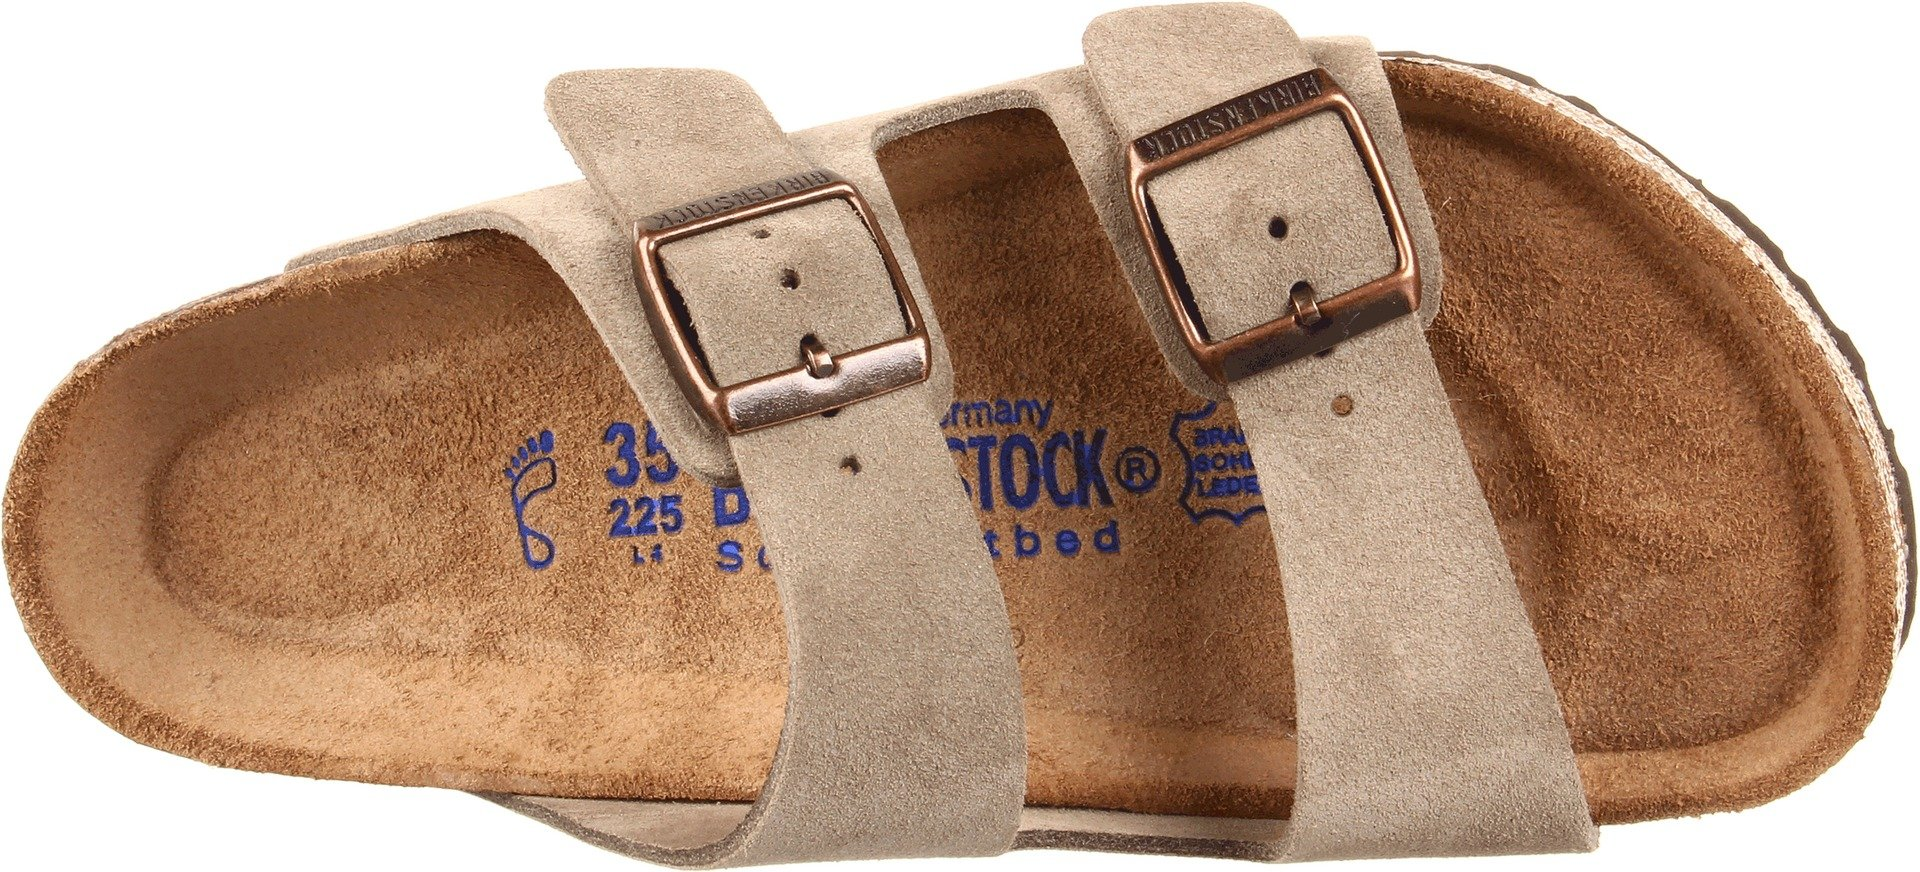 Birkenstock Unisex Arizona Taupe Suede Soft Foot Bed Sandals - 38 M EU / 7-7.5 B(M) US by Birkenstock (Image #7)